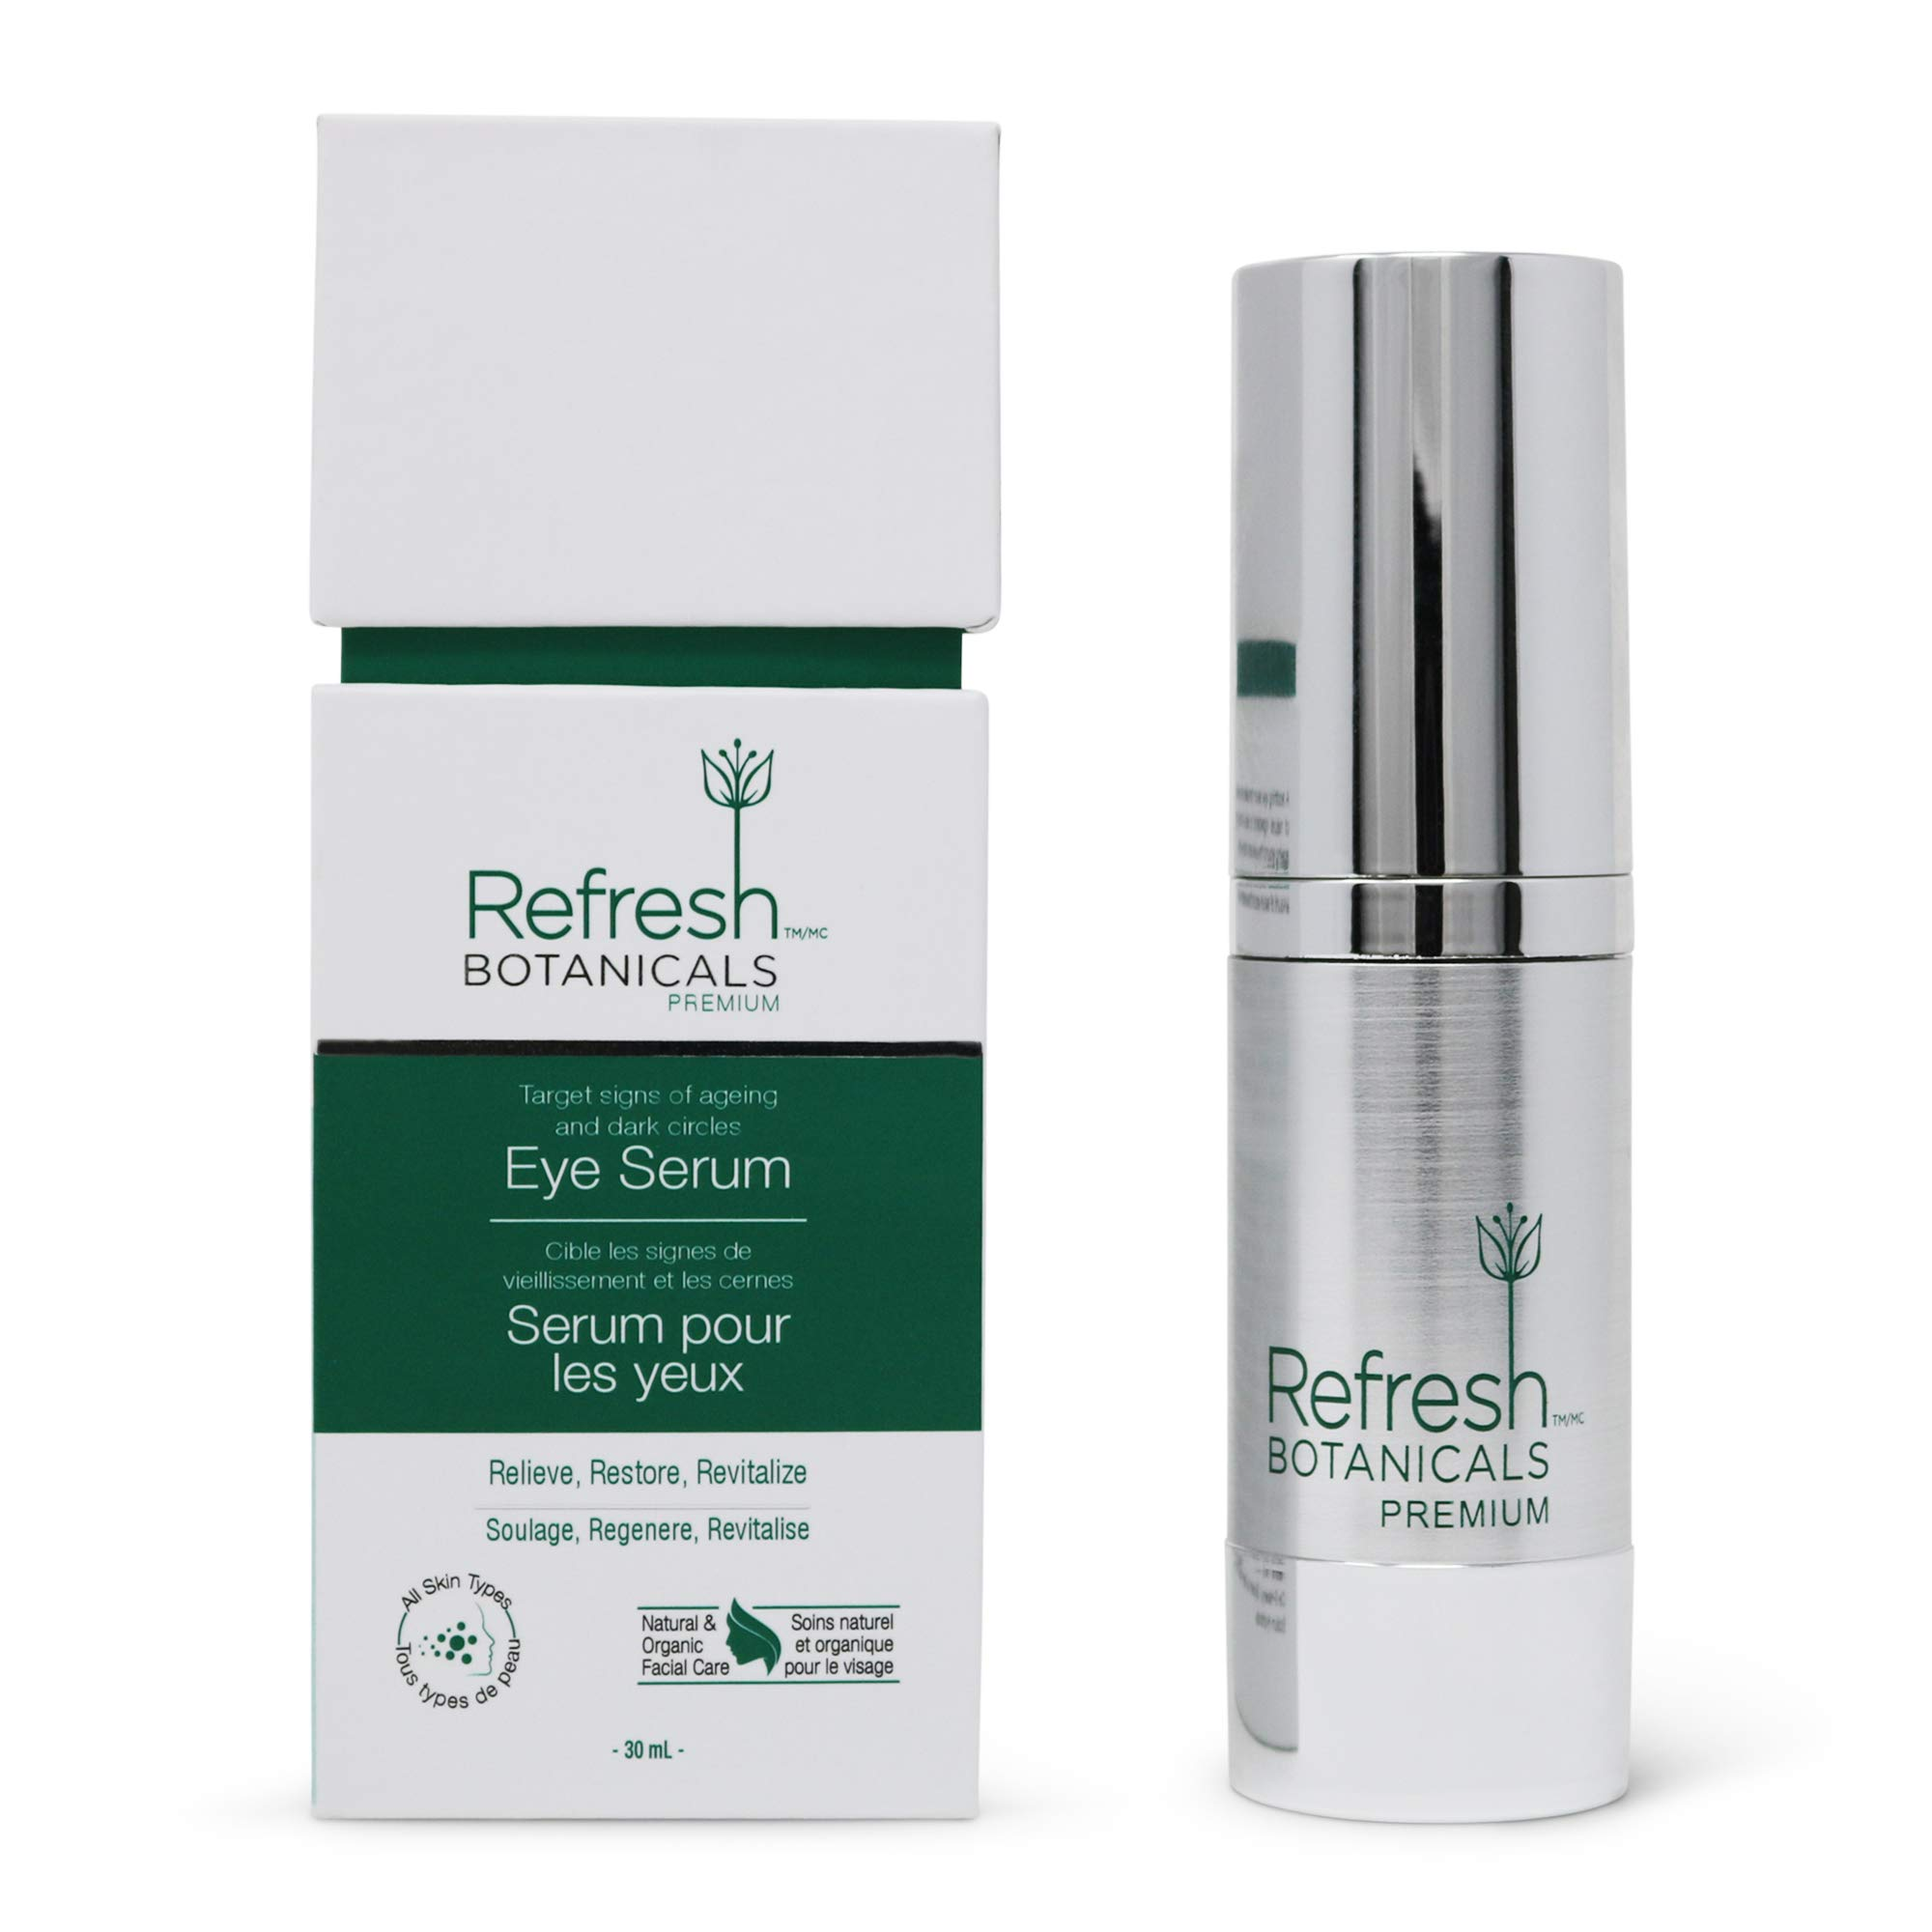 Refresh Botanicals Vitamin C Eye Serum with Hyaluronic Acid Sodium Hyaluronate, Anti Aging, Natural and Organic with Vitamin A   Effective Against Wrinkles, Puffy Eyes, and Dark Circles, 1 Fl Oz